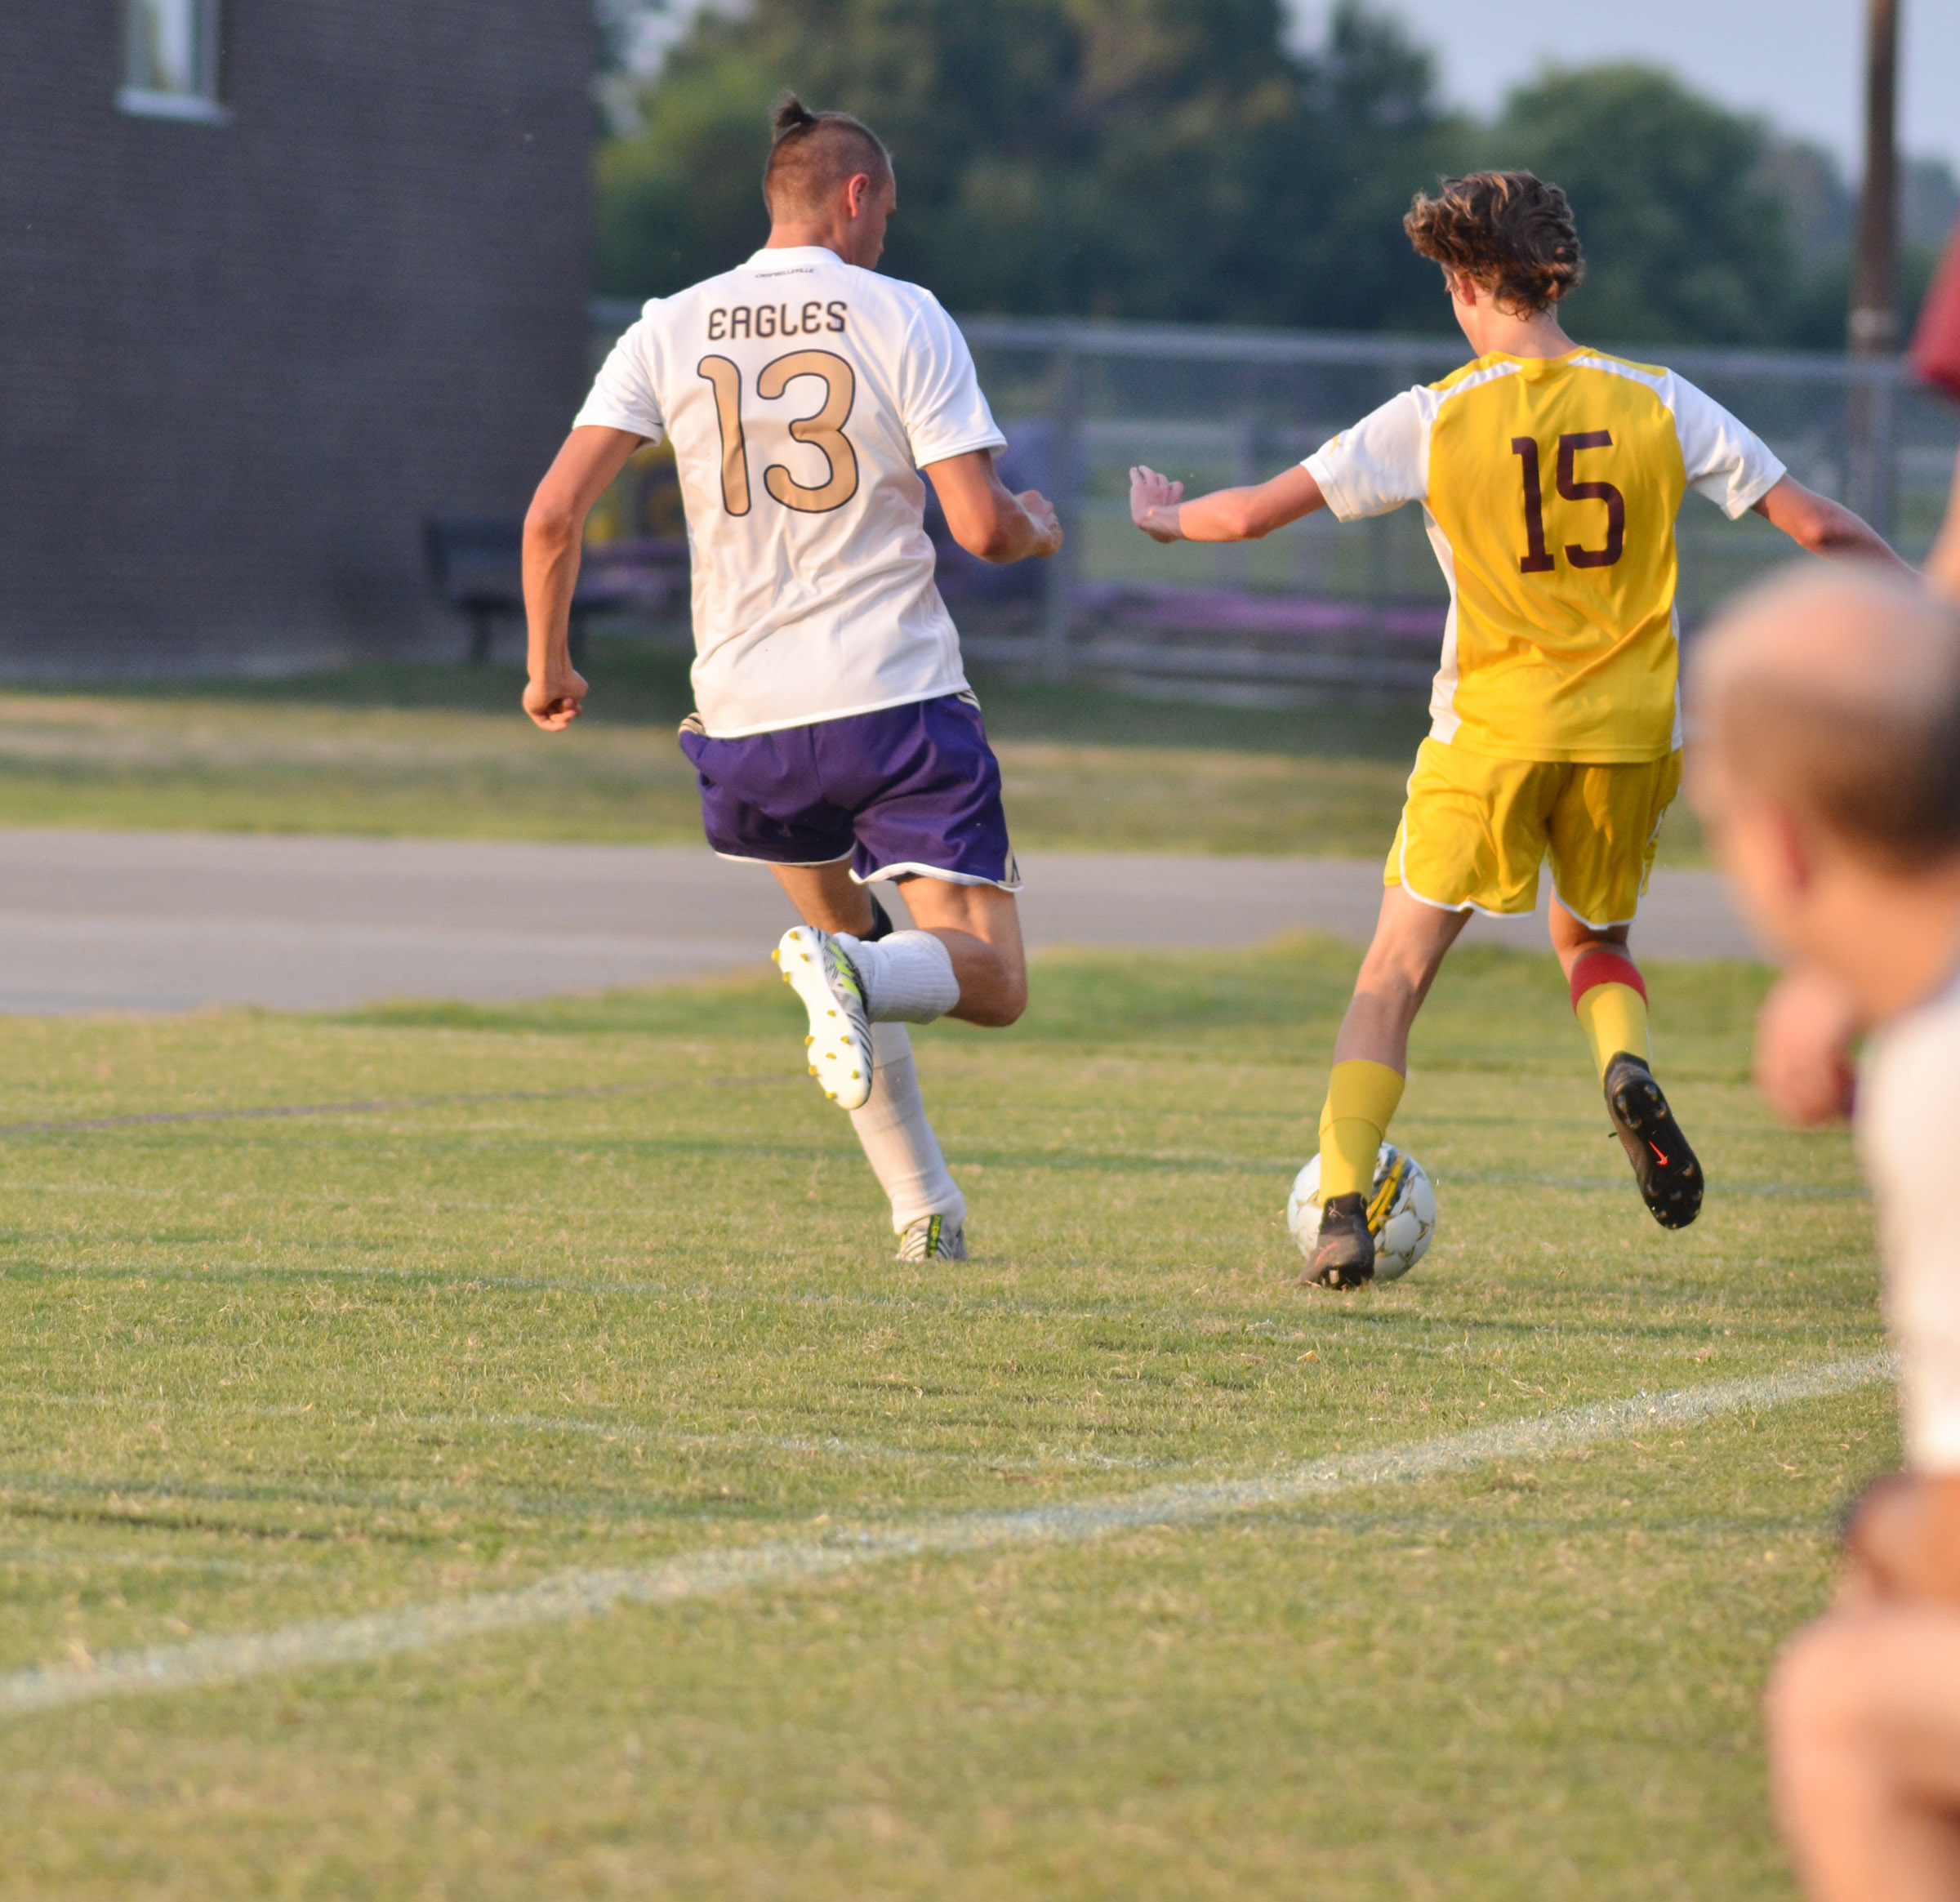 CHS senior Logan Cole runs for the ball.